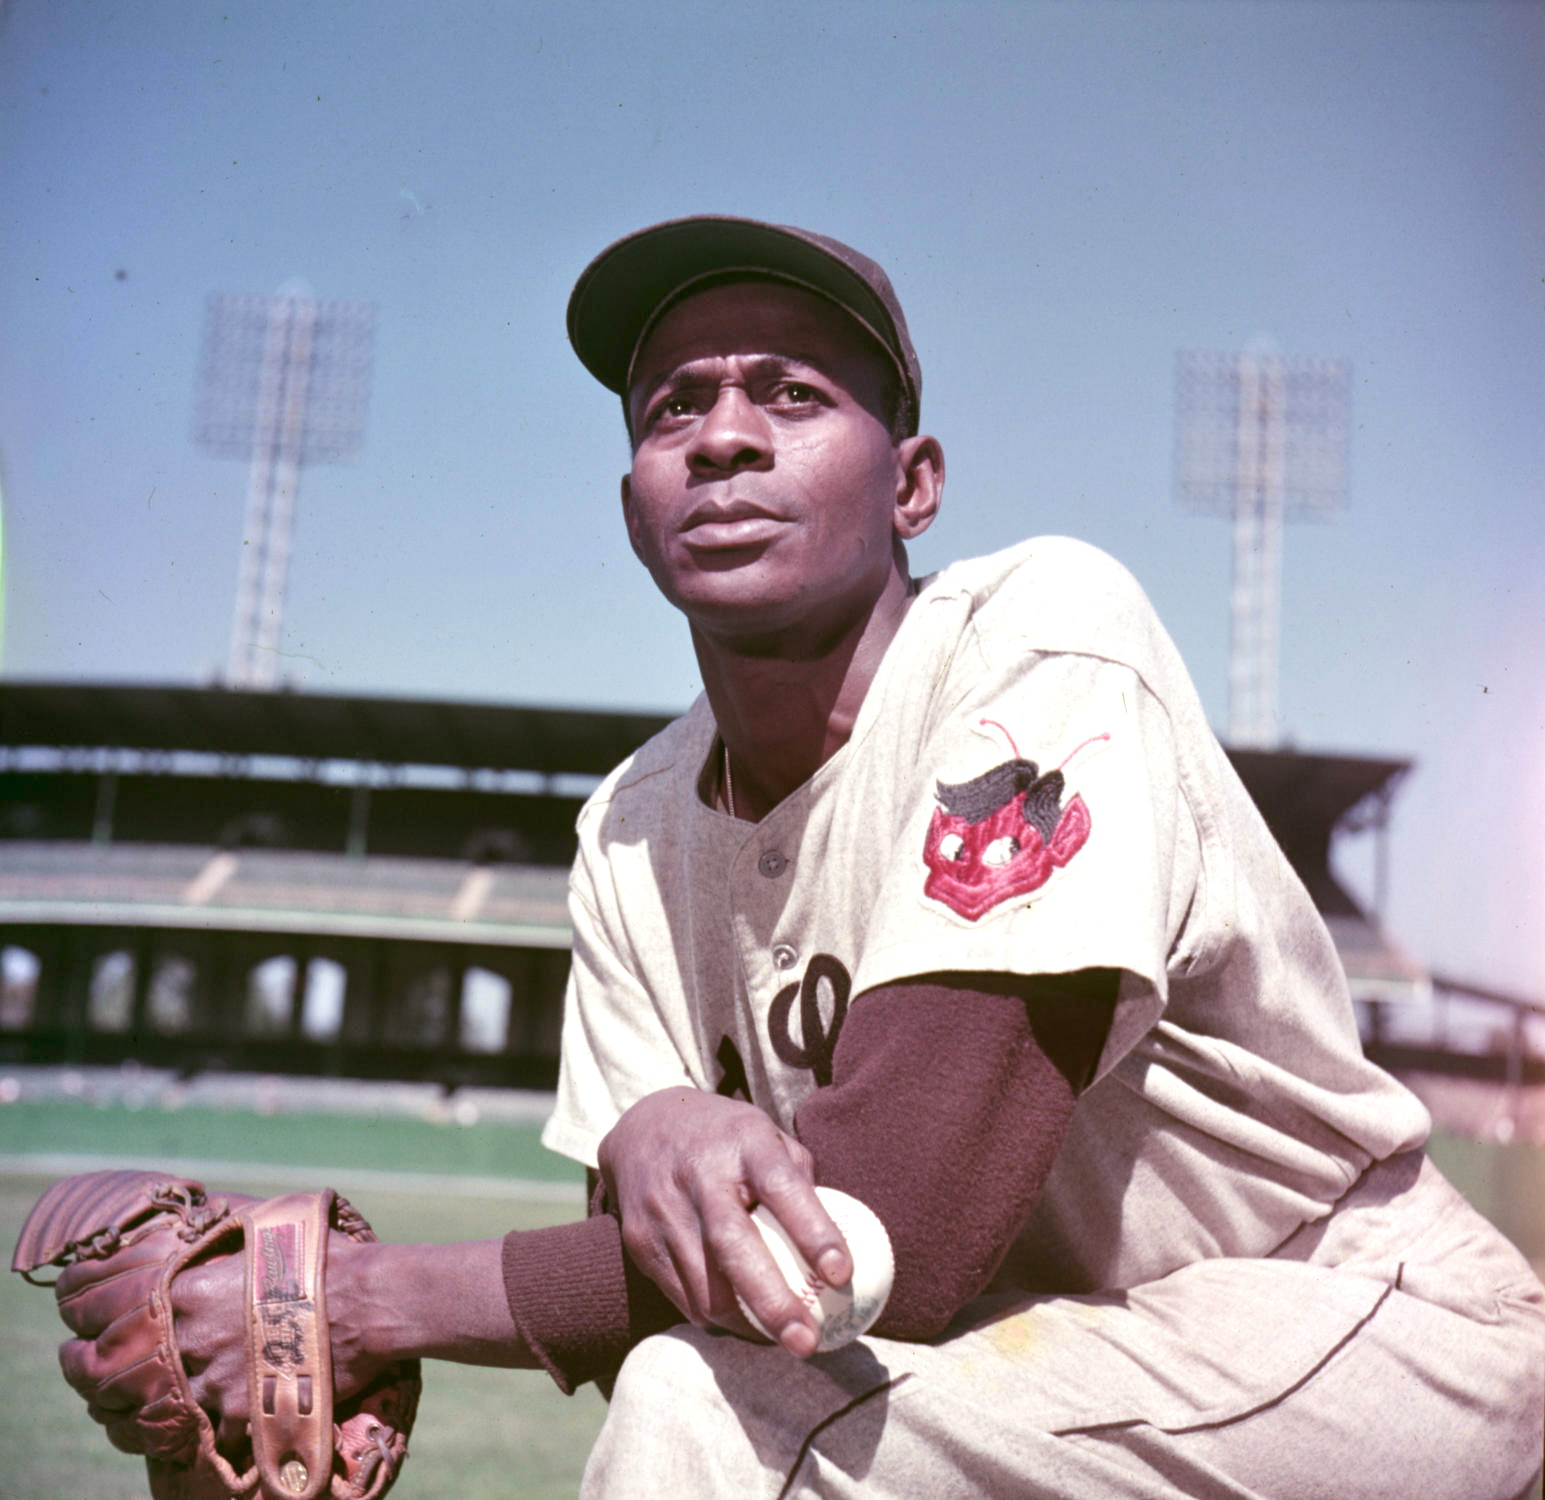 Satchel Paige of the St. Louis Browns, October 1, 1952.